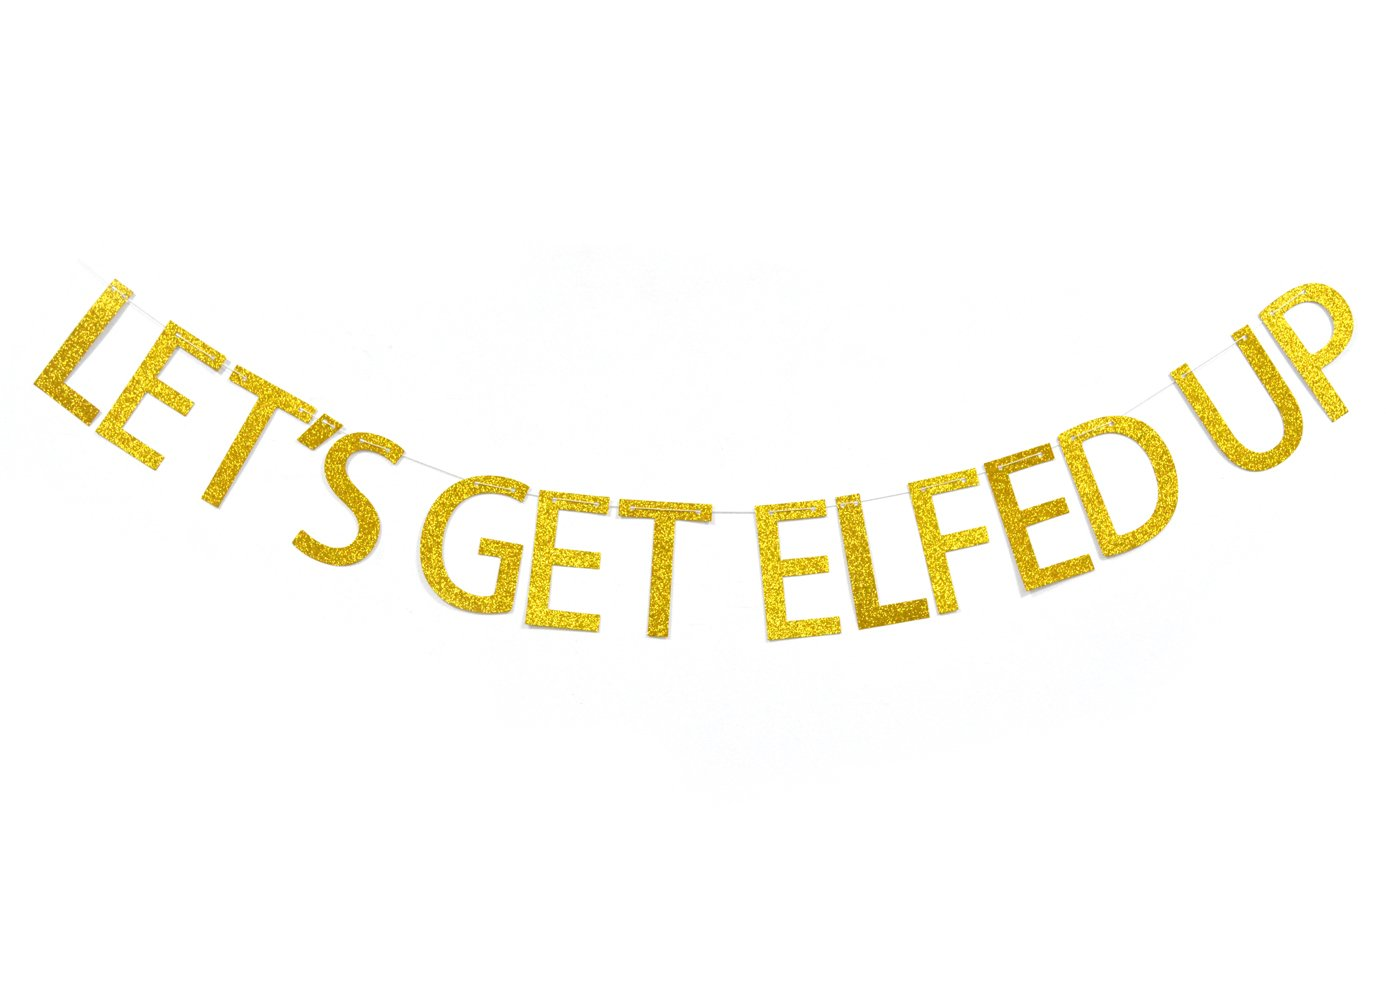 Qttier Lets Get Elfed Up Gold Glitter Banner-Funny Christmas Decorations